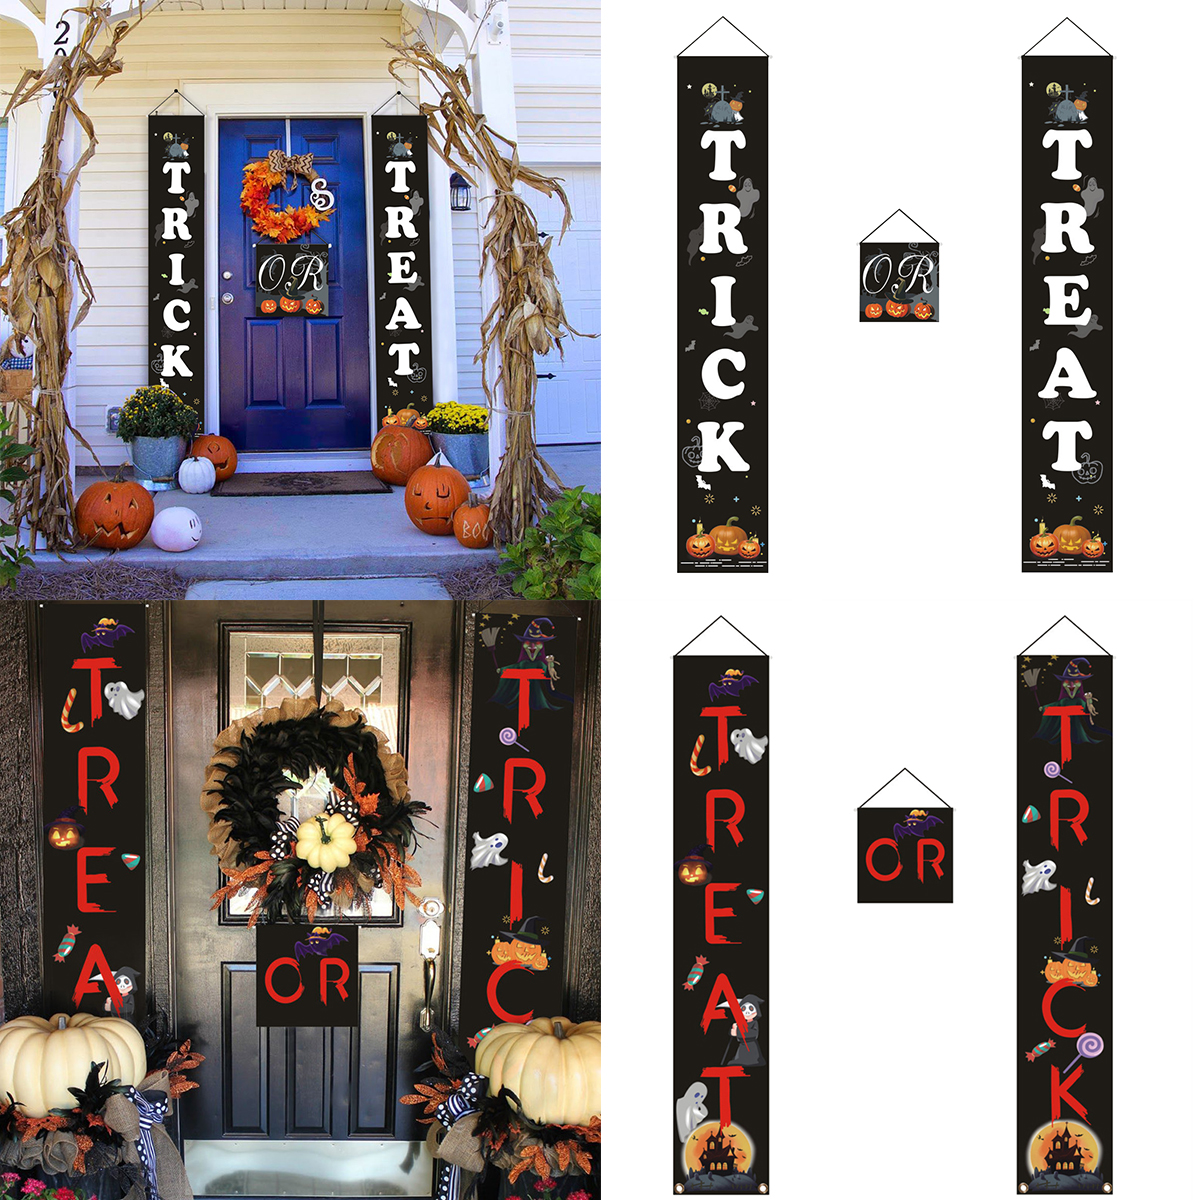 Details About 3PCS Halloween Decorations Trick Or Treat Banner Party Wall  Door Hanging Sign